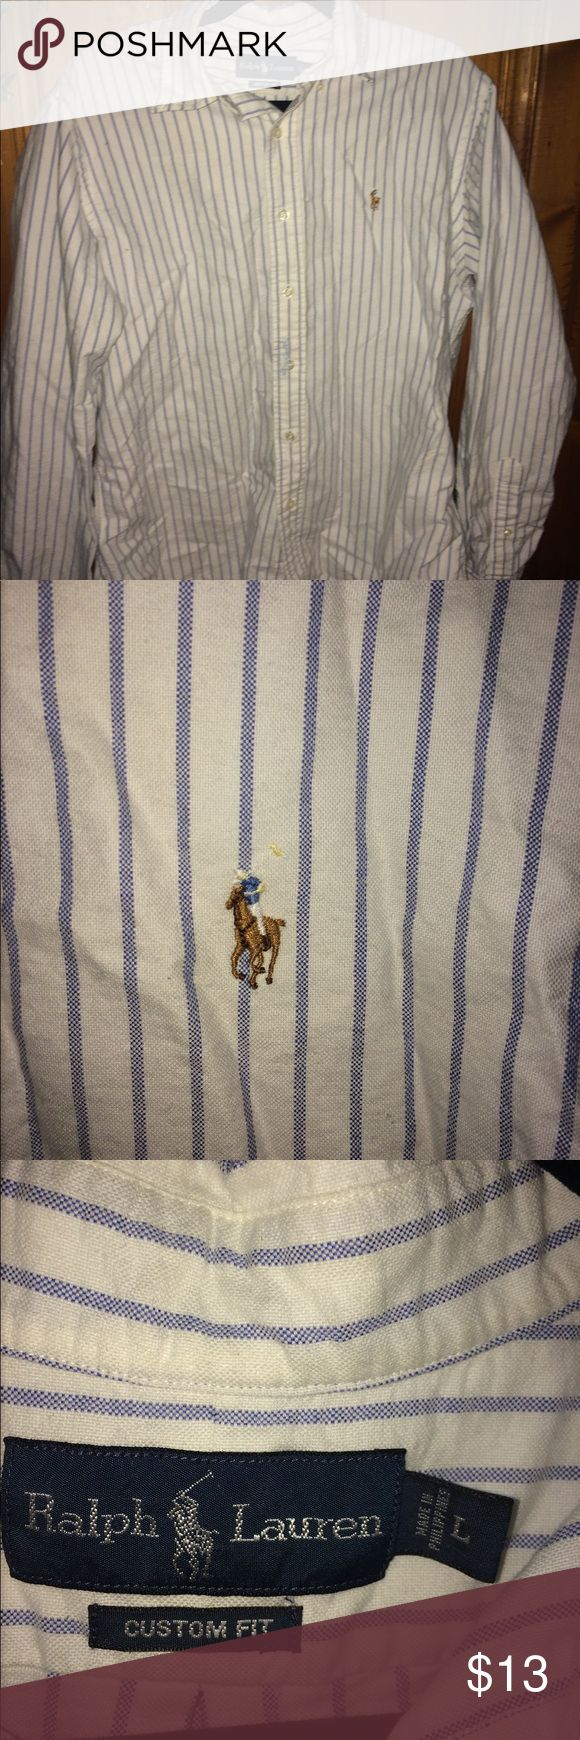 Ralph Lauren Polo dress shirt Large white with blue stripes Polo dress shirt in excellent condition Polo by Ralph Lauren Shirts Dress Shirts